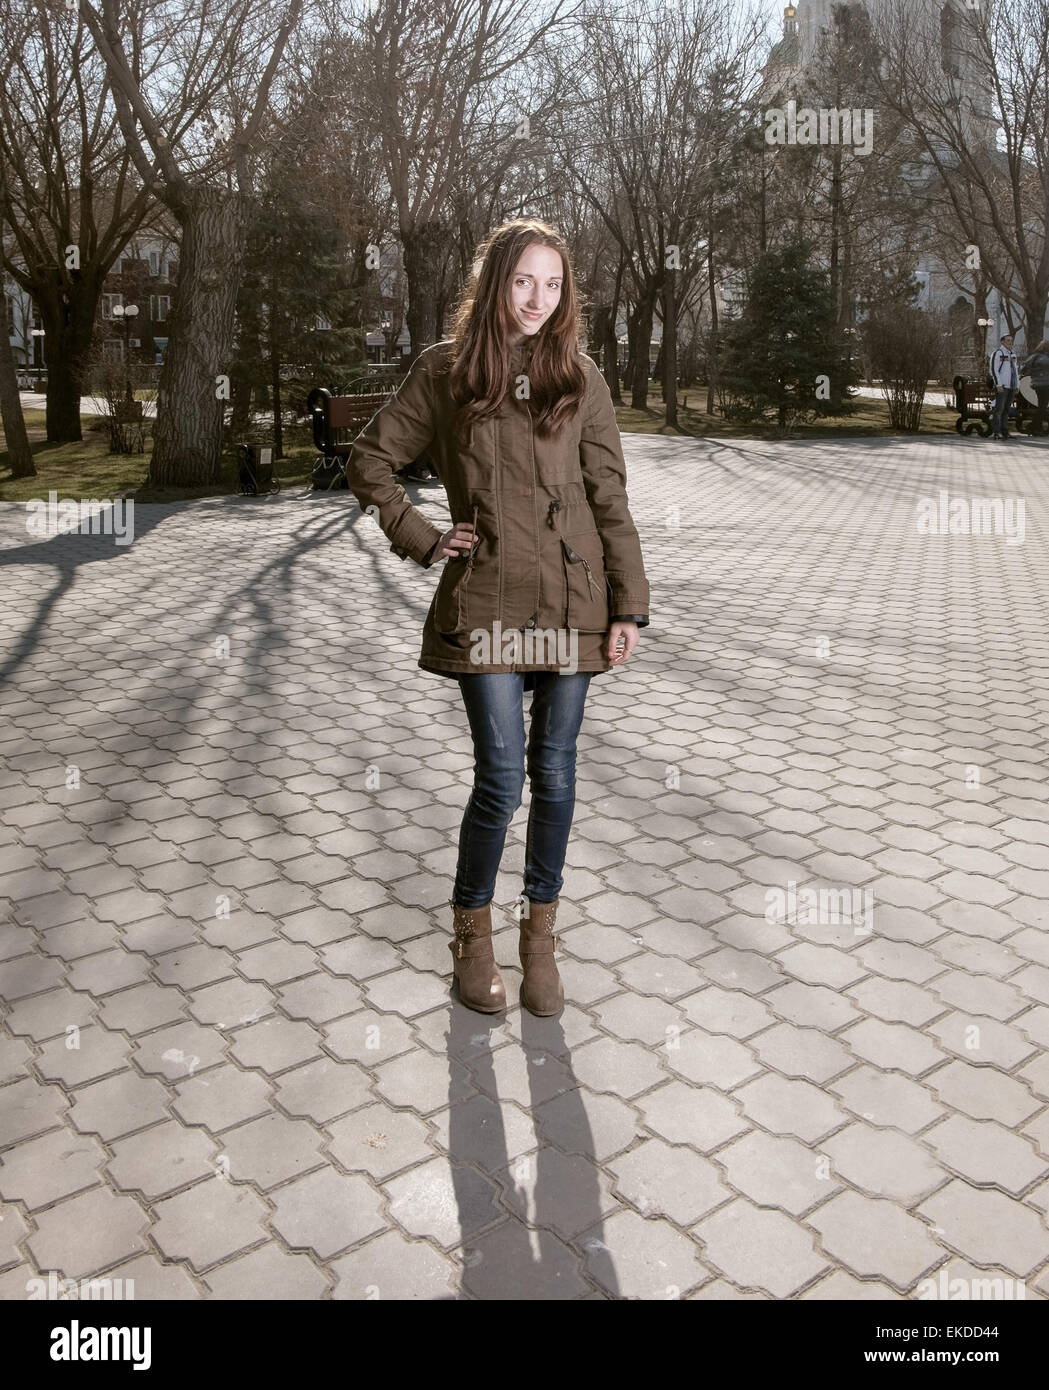 b48a79c97 Full body image of cute young women posing outdoors in city park smiling in  casual wear. A lot of copyspace on the pavement. Toned colorized stylized  film ...